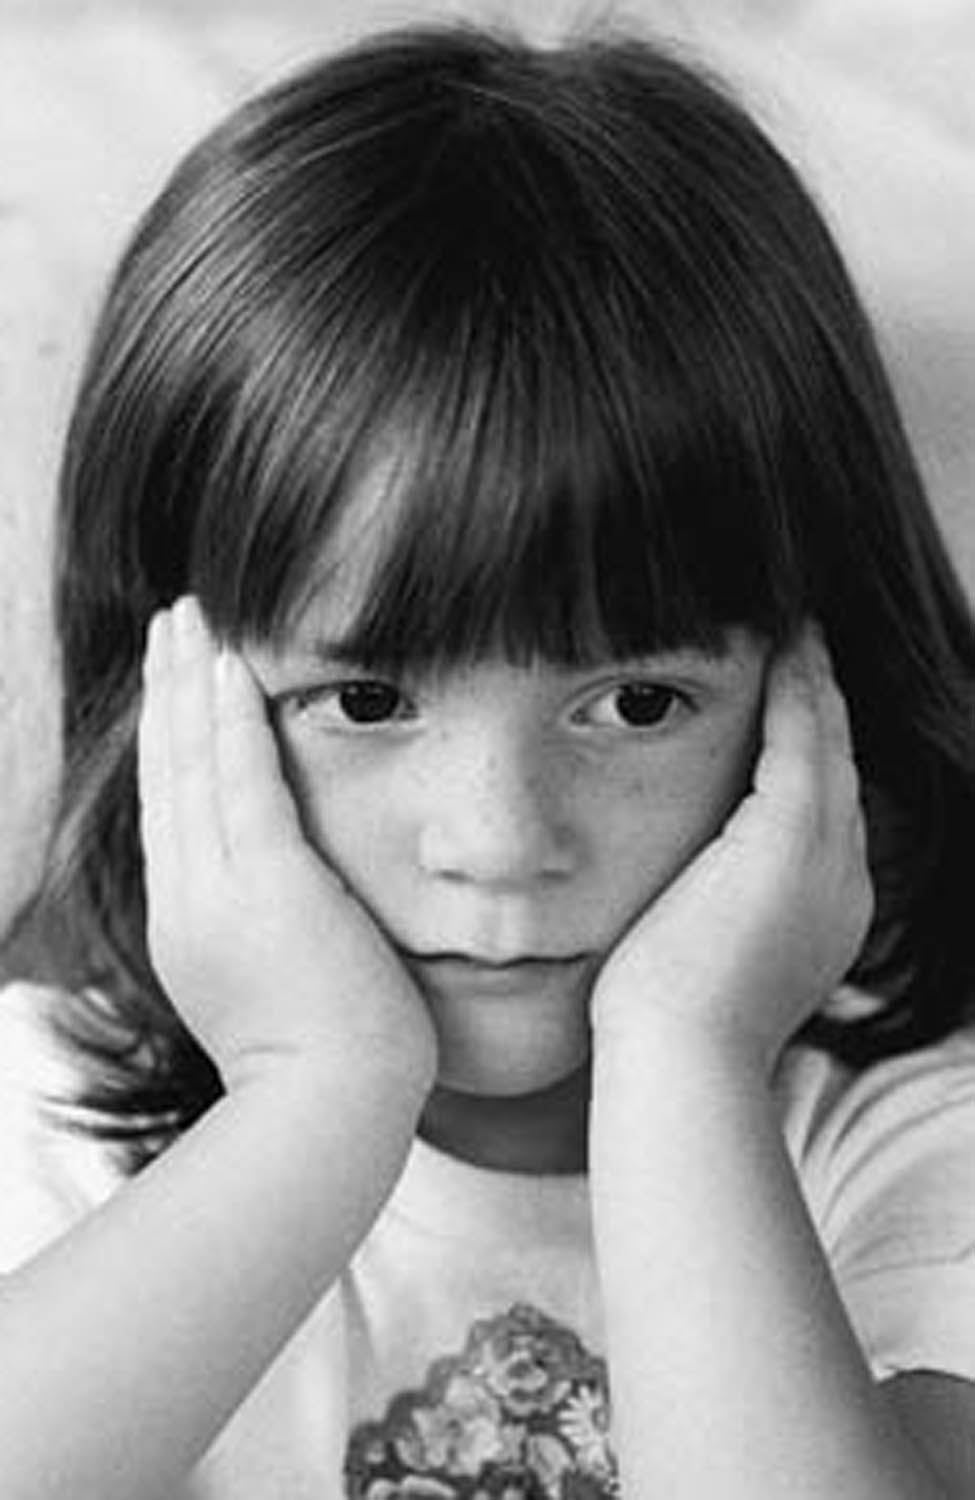 depression in children Teen depression — learn about symptoms and treatment of depression in teenagers menu patient care & health info quality care  depression in children and .